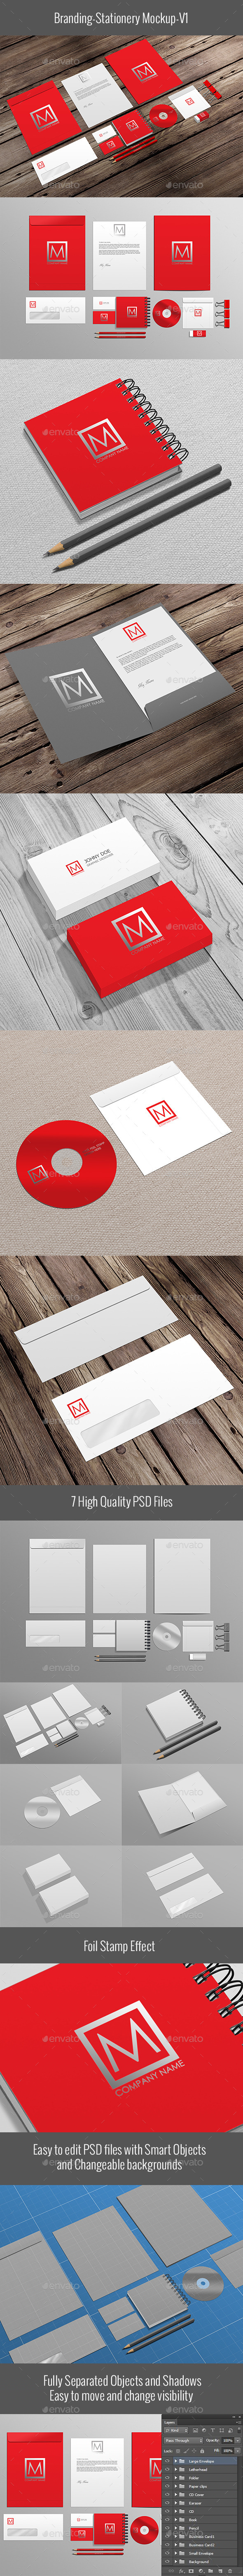 GraphicRiver Branding-Stationery Mockup 10505460